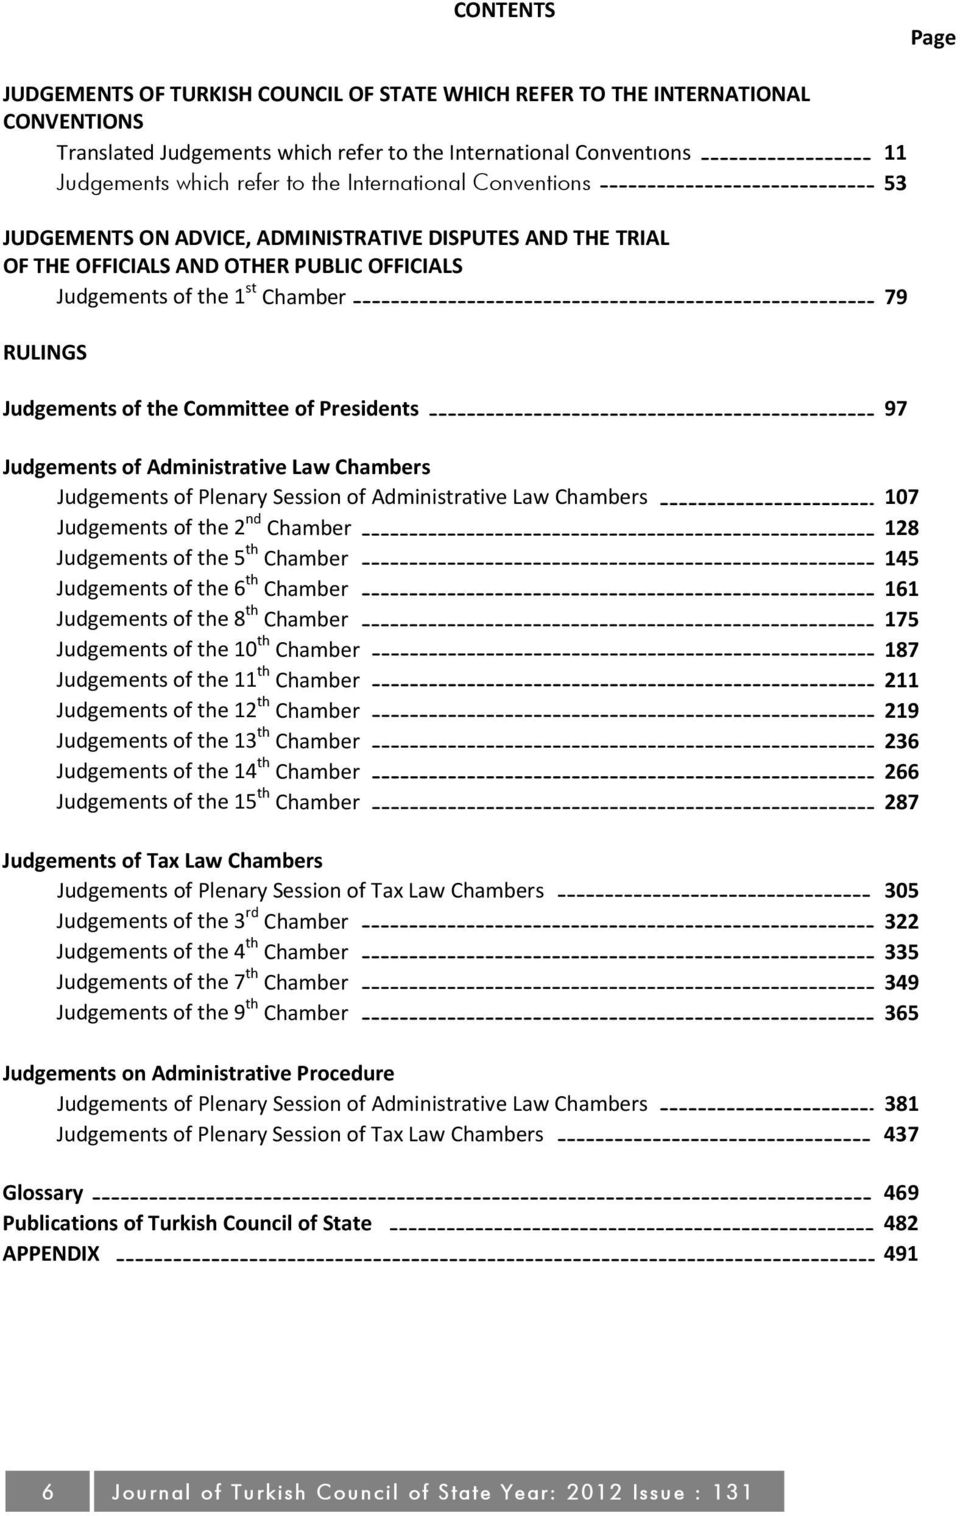 Committee of Presidents 97 Judgements of Administrative Law Chambers Judgements of Plenary Session of Administrative Law Chambers 107 Judgements of the 2 nd Chamber 128 Judgements of the 5 th Chamber